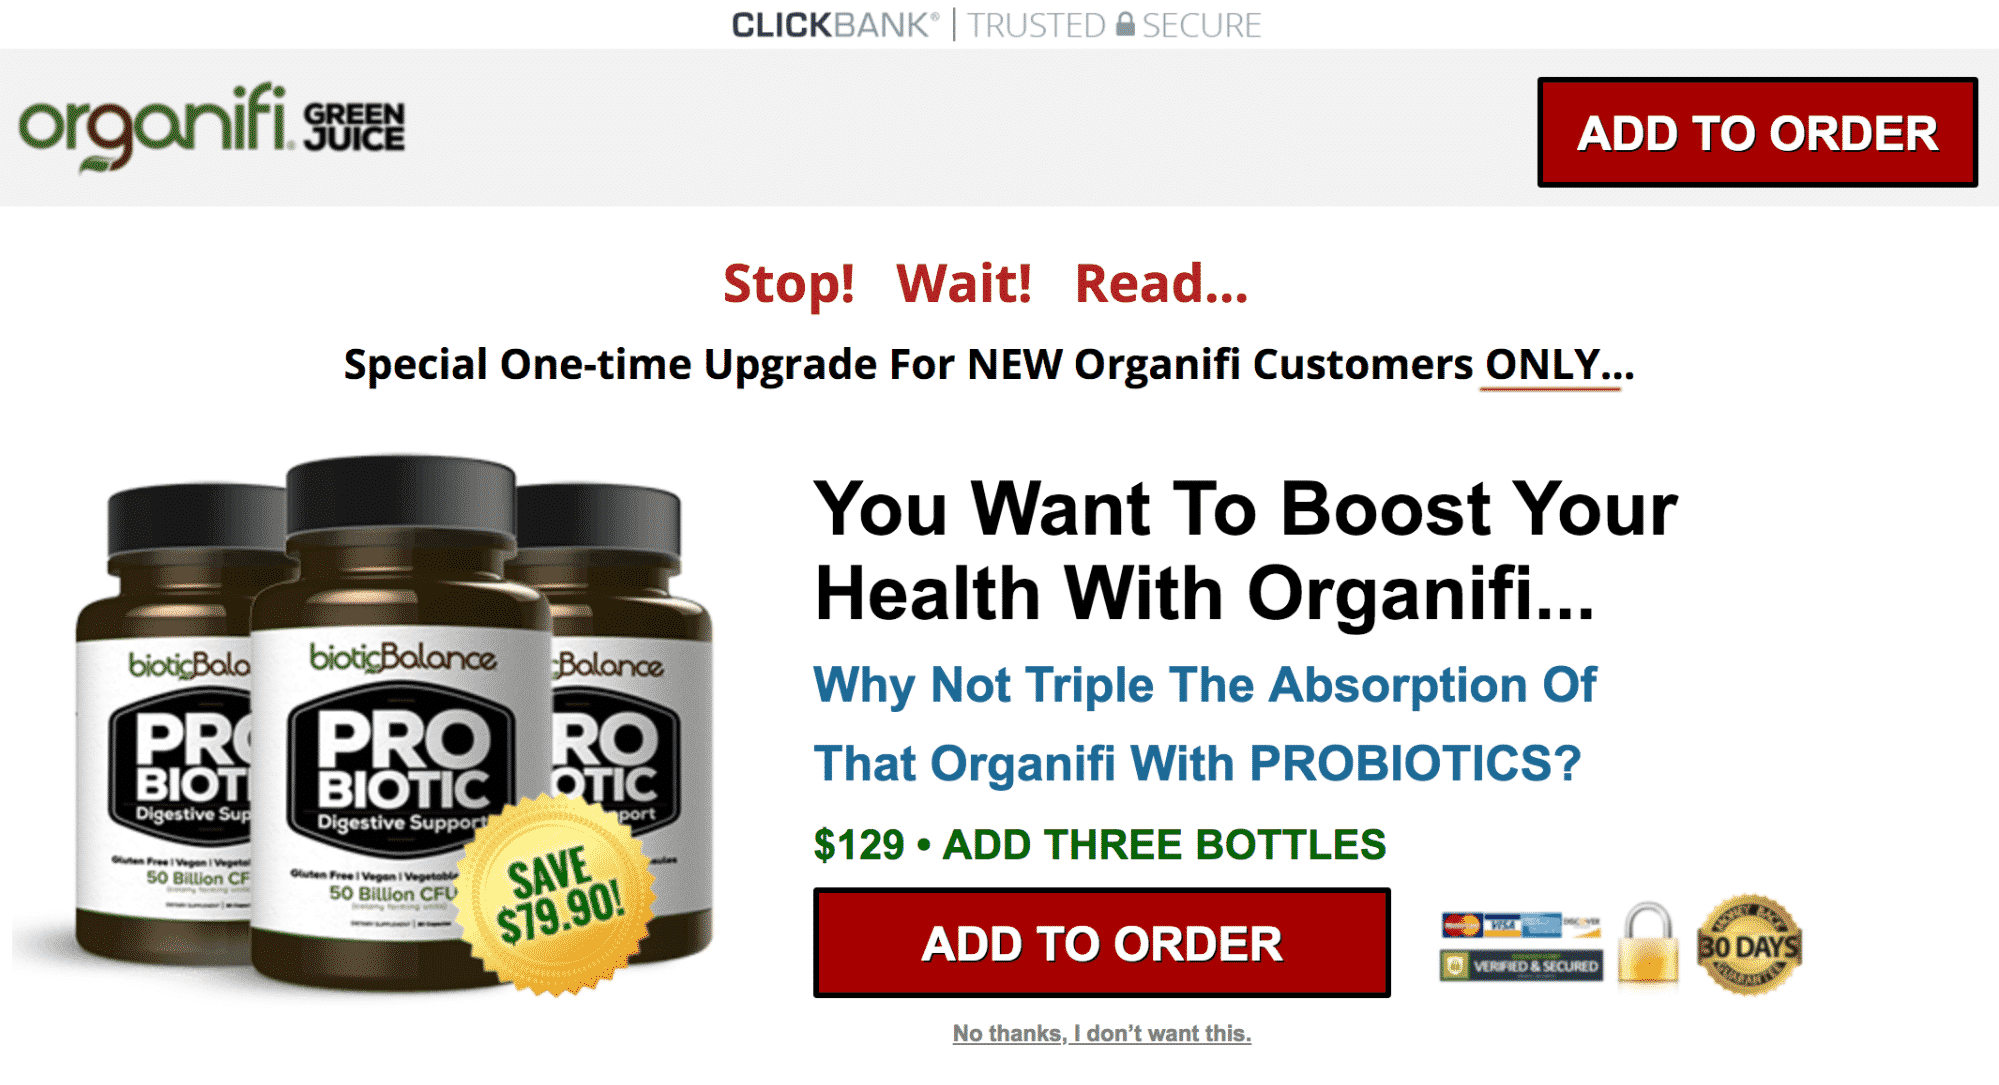 Organifi subscription one-time offer